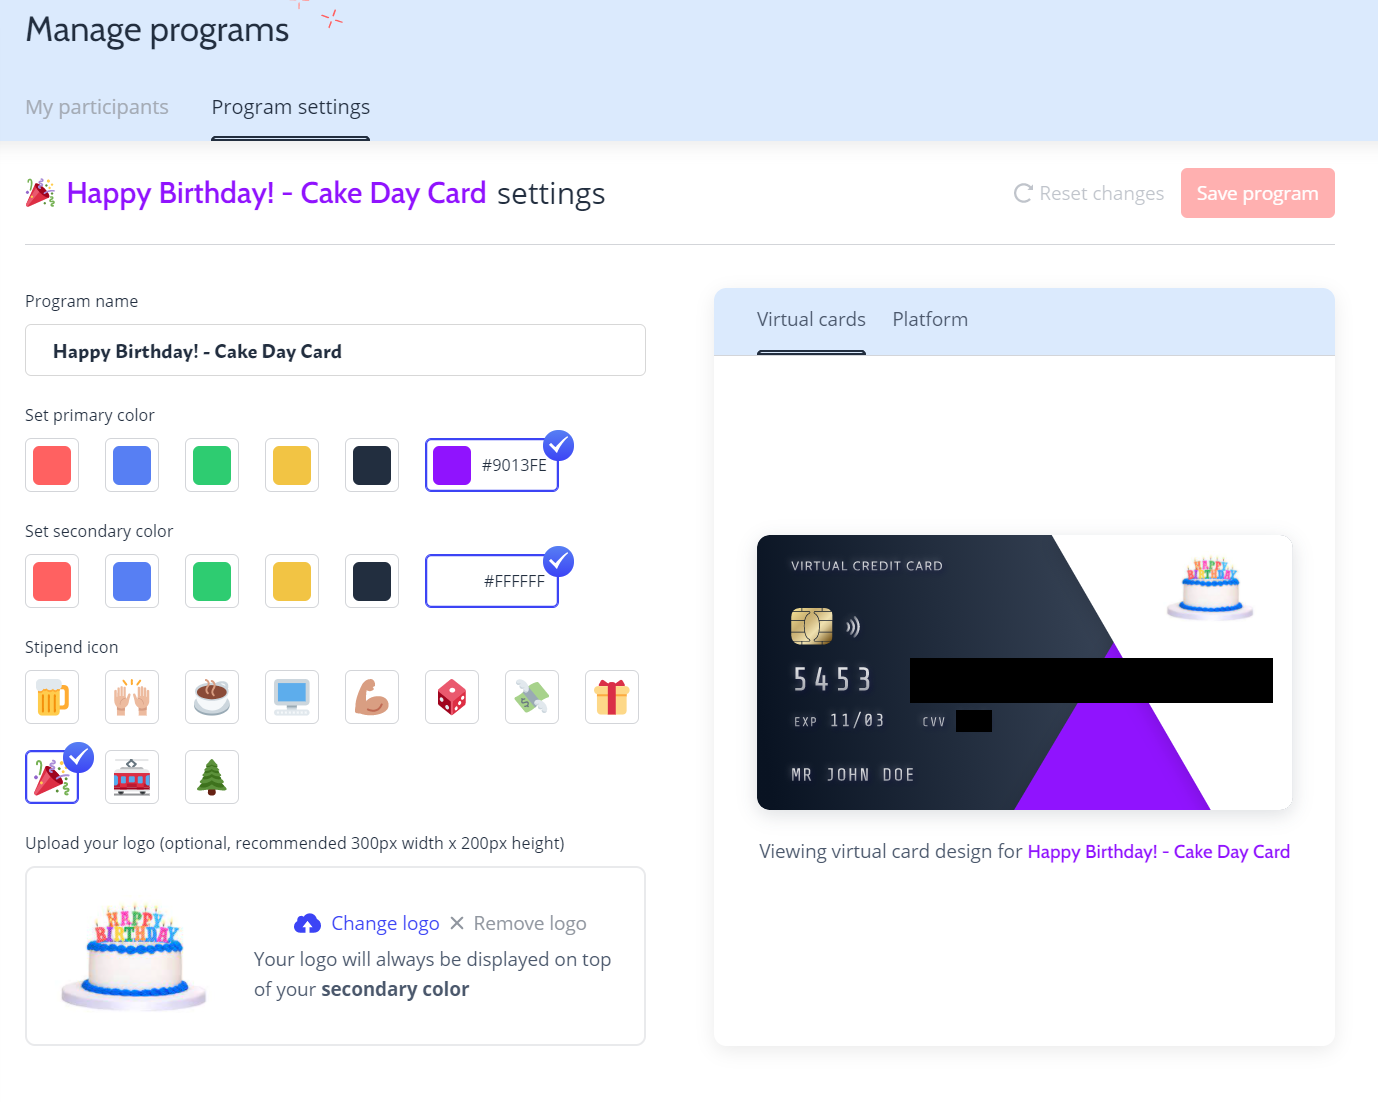 A branded virtual credit card for a corporate gift idea